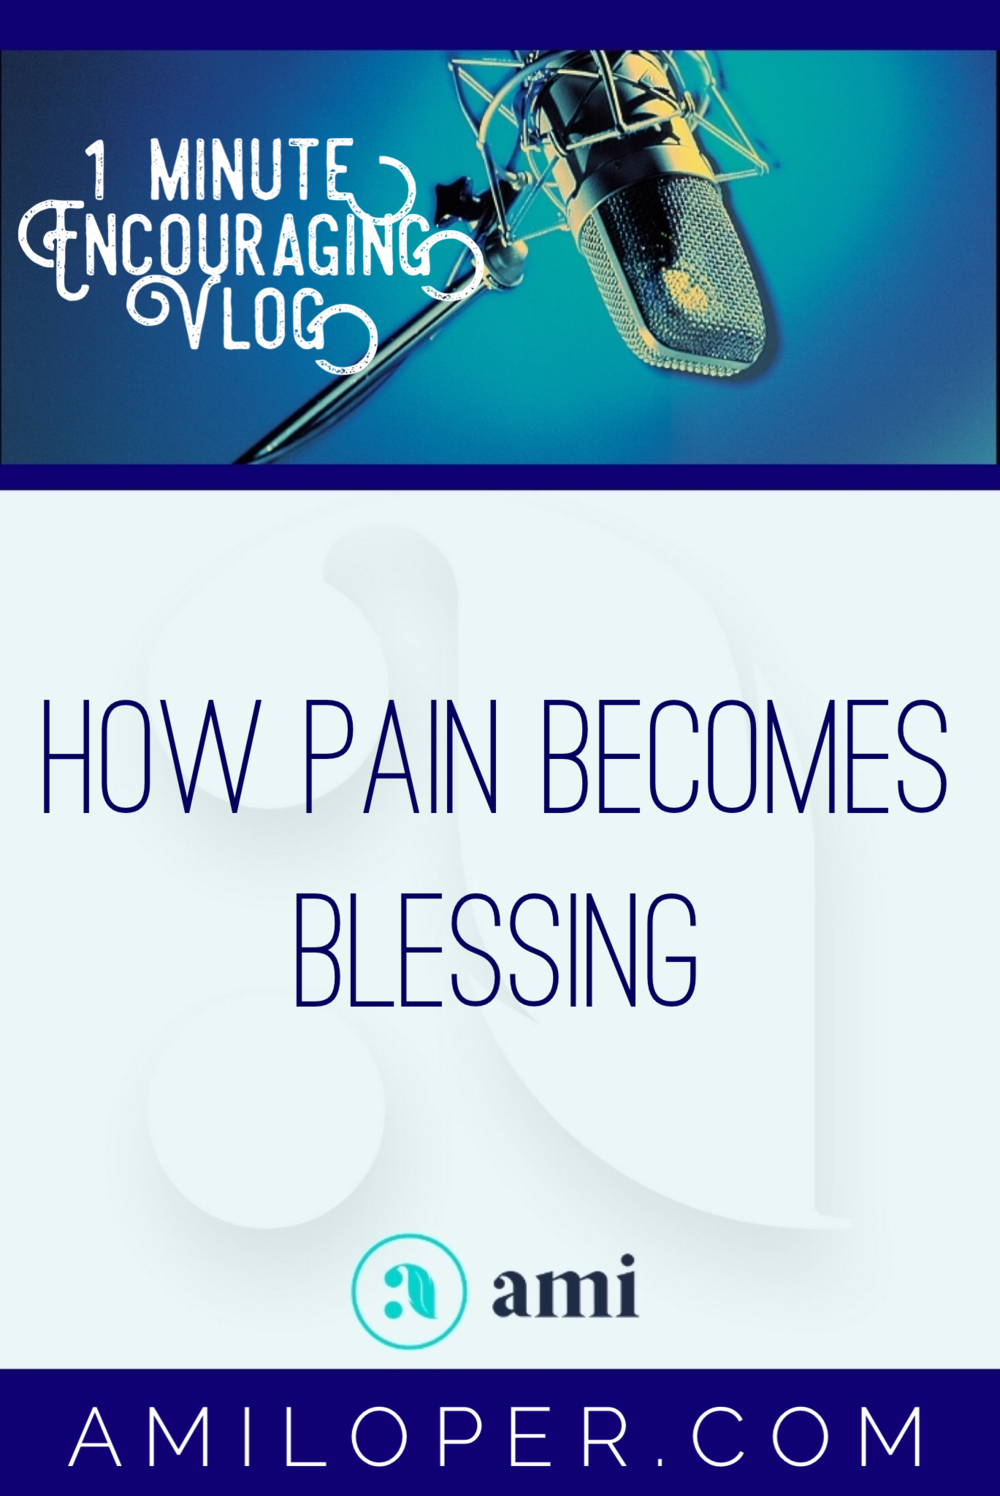 The painful things we go through are valuable for our personal growth. But the tears we shed in hard times have value beyond ourselves. In Scripture this place of weeping is called the Valley of Baca and our tears are transformed there. #Blessings #Vlog